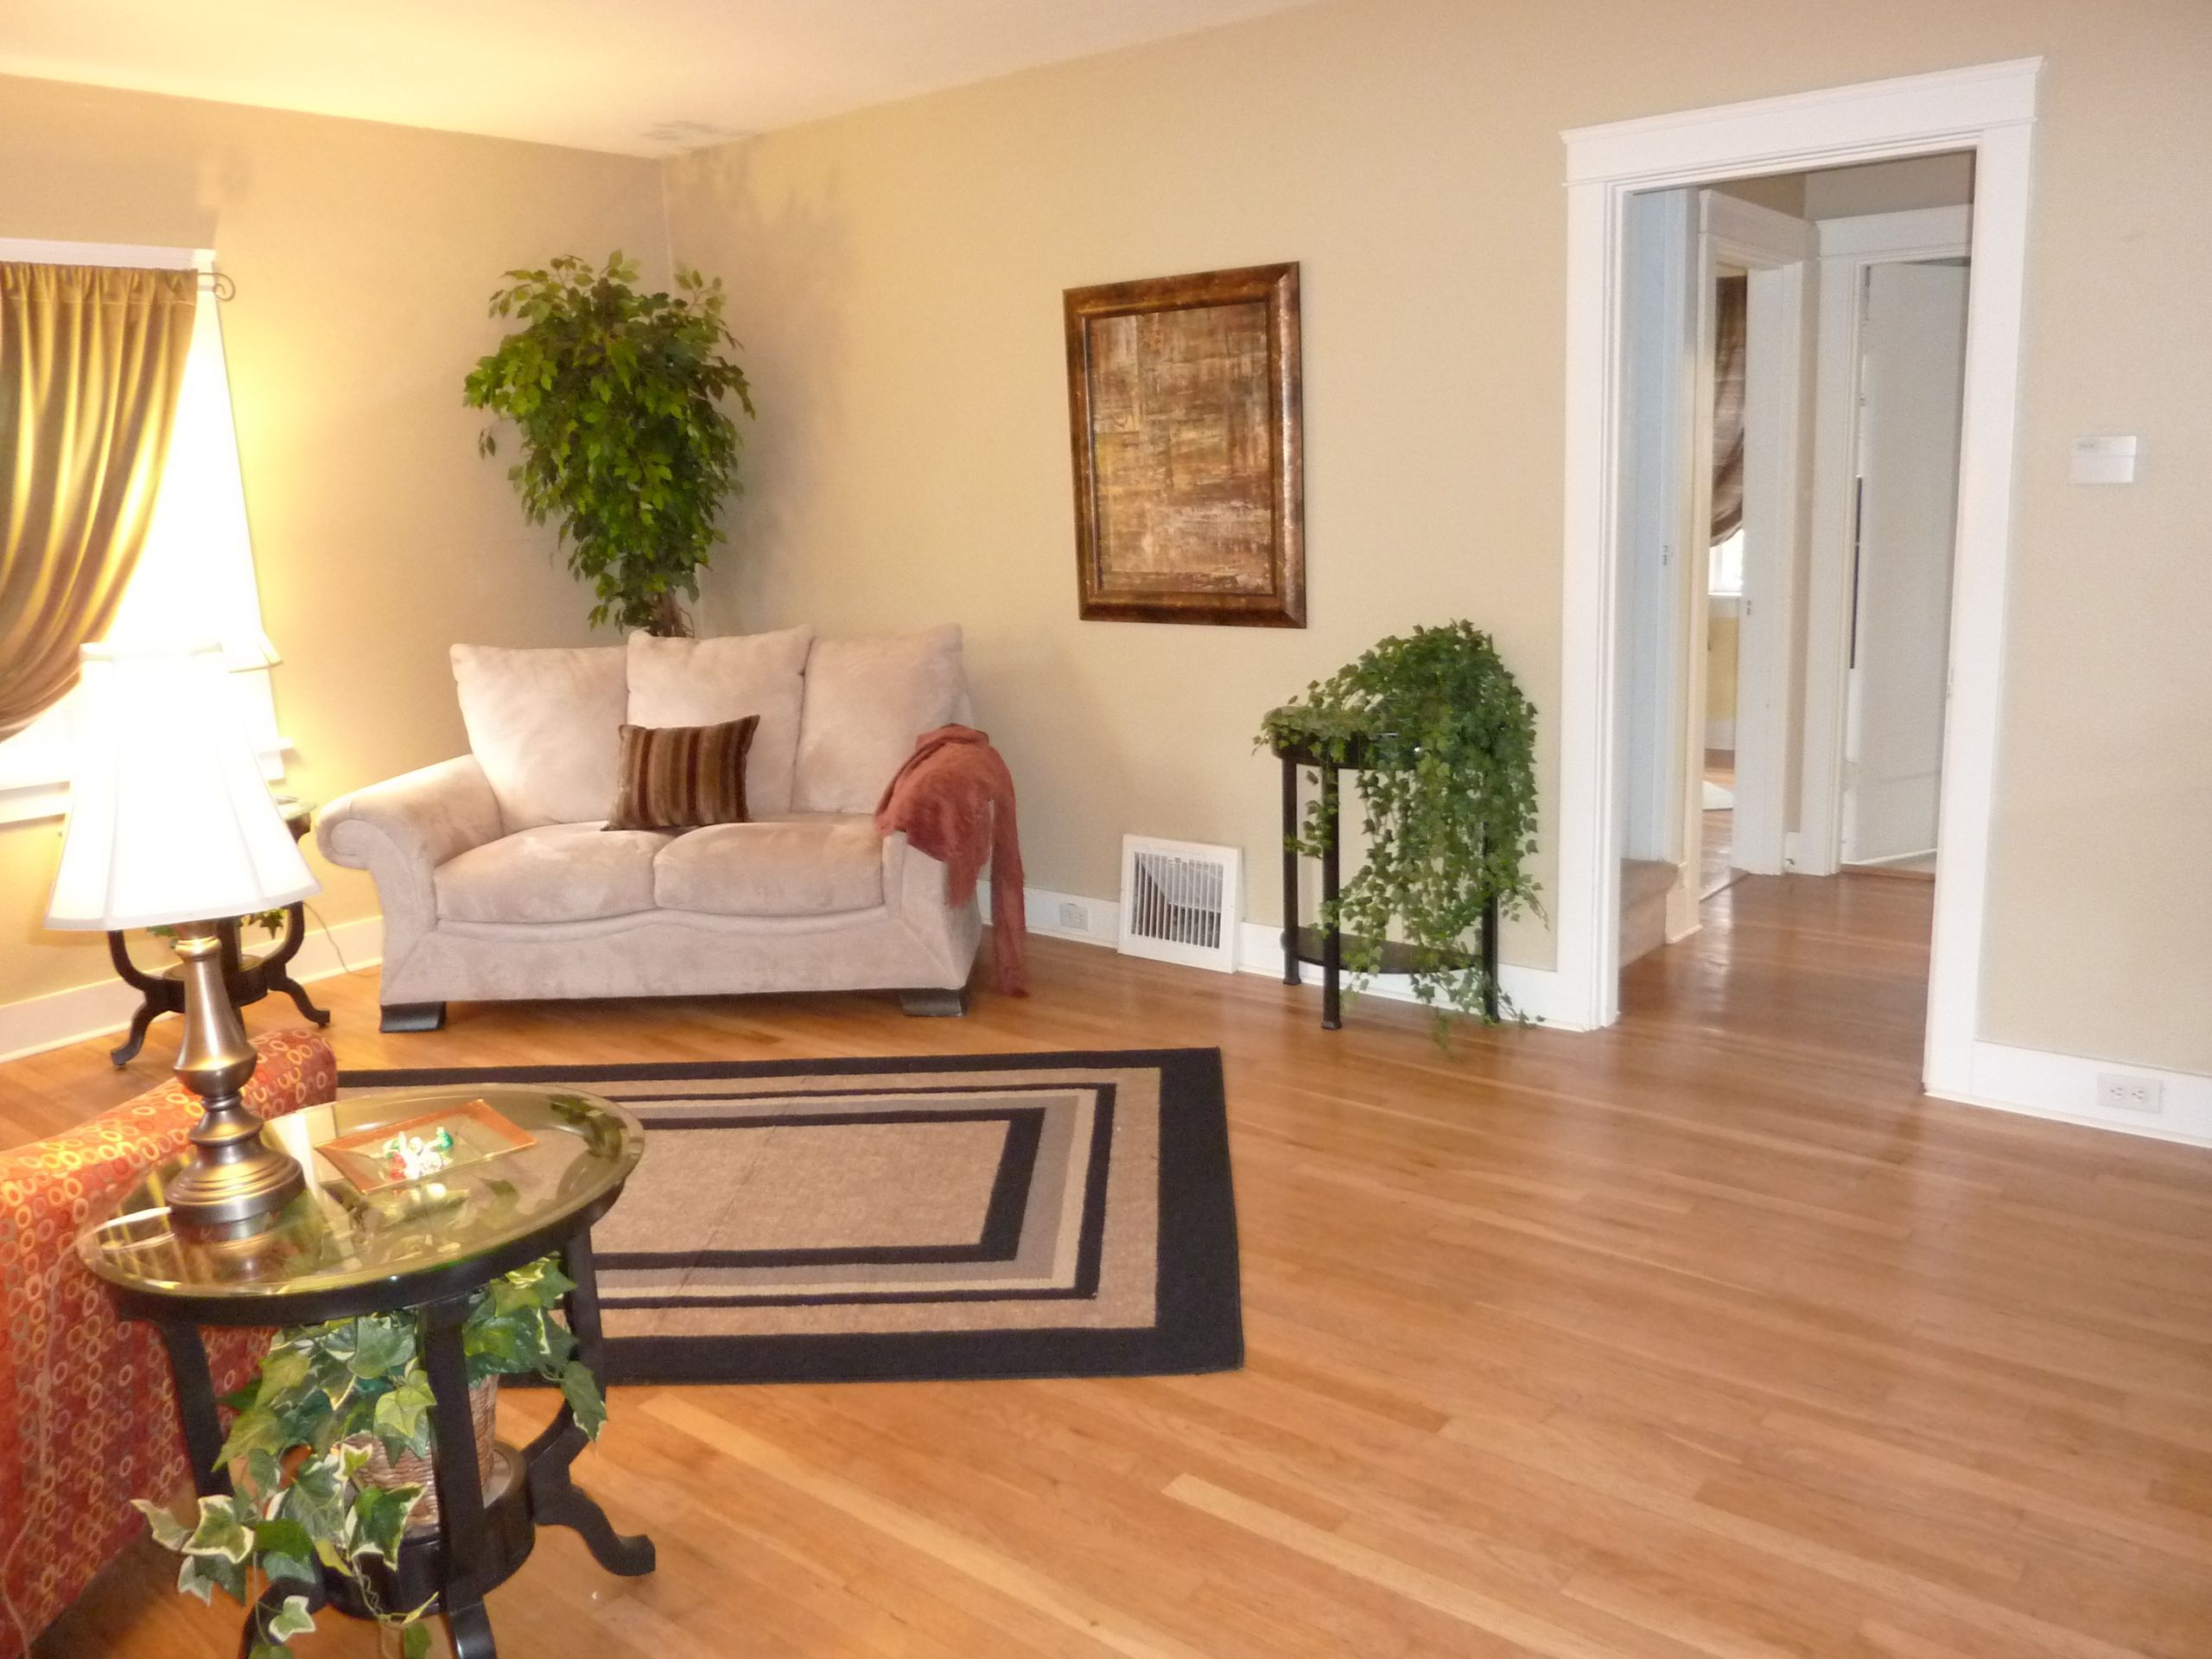 Living Room Painting Ideas Brown Trim To White Google Image Result For